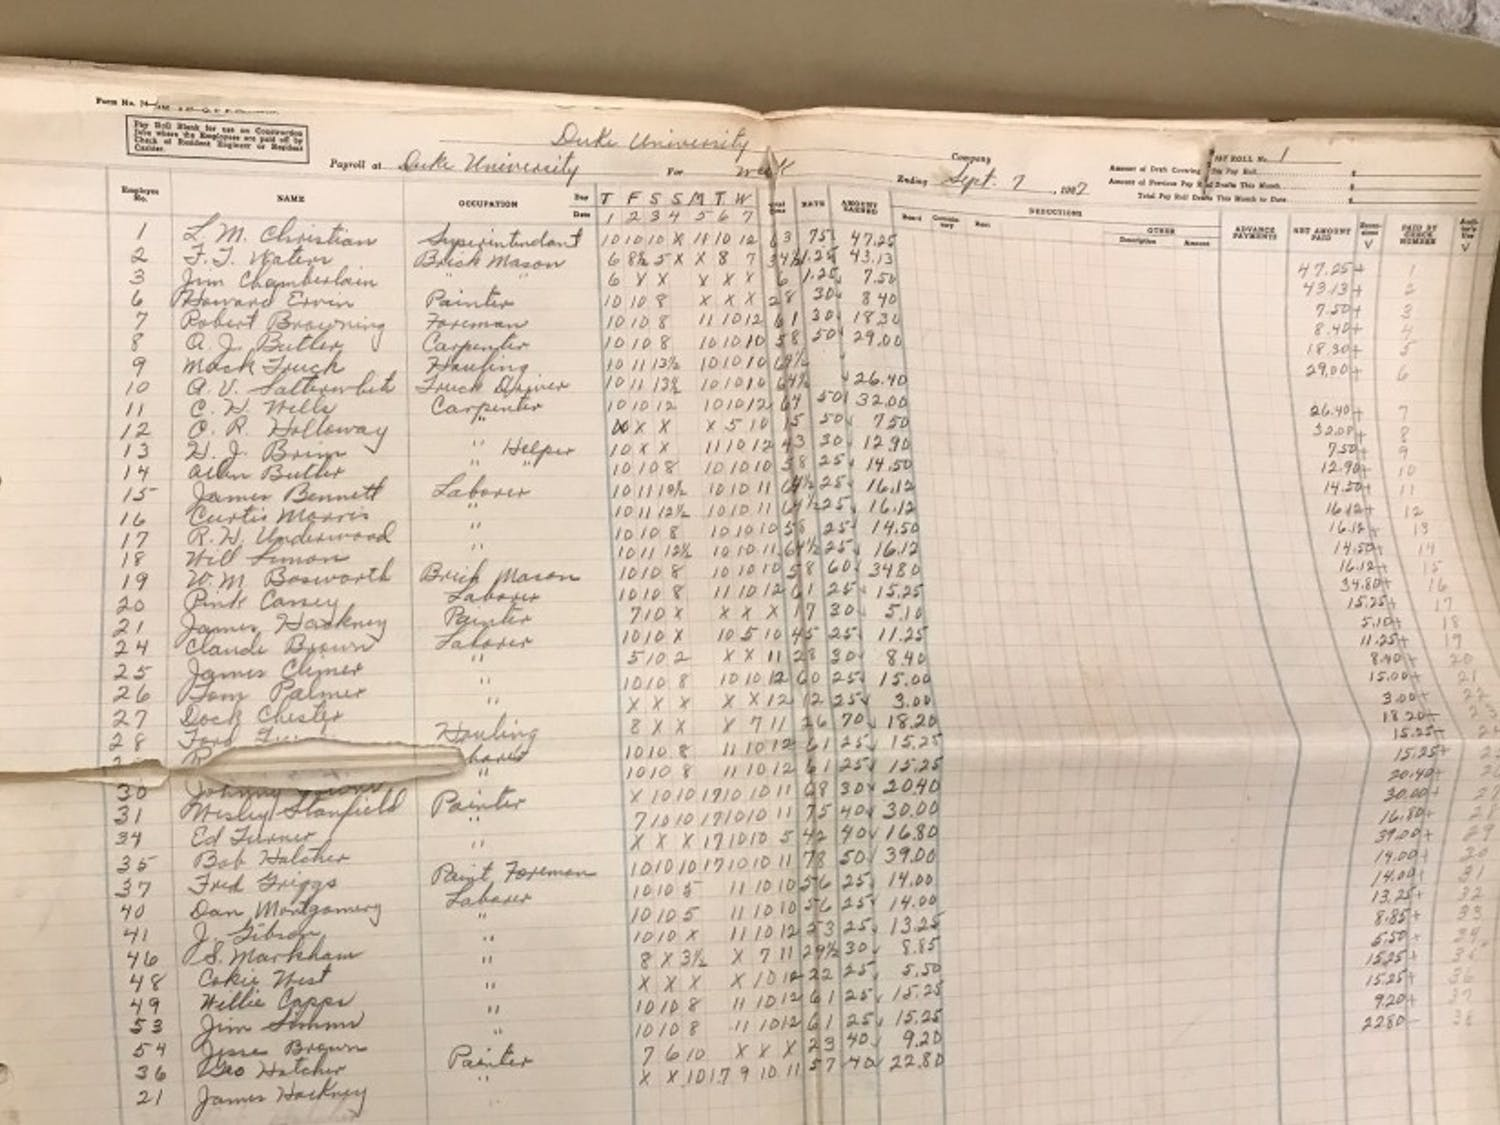 A payroll for the construction workers who built West Campus in the Rubenstein Library.